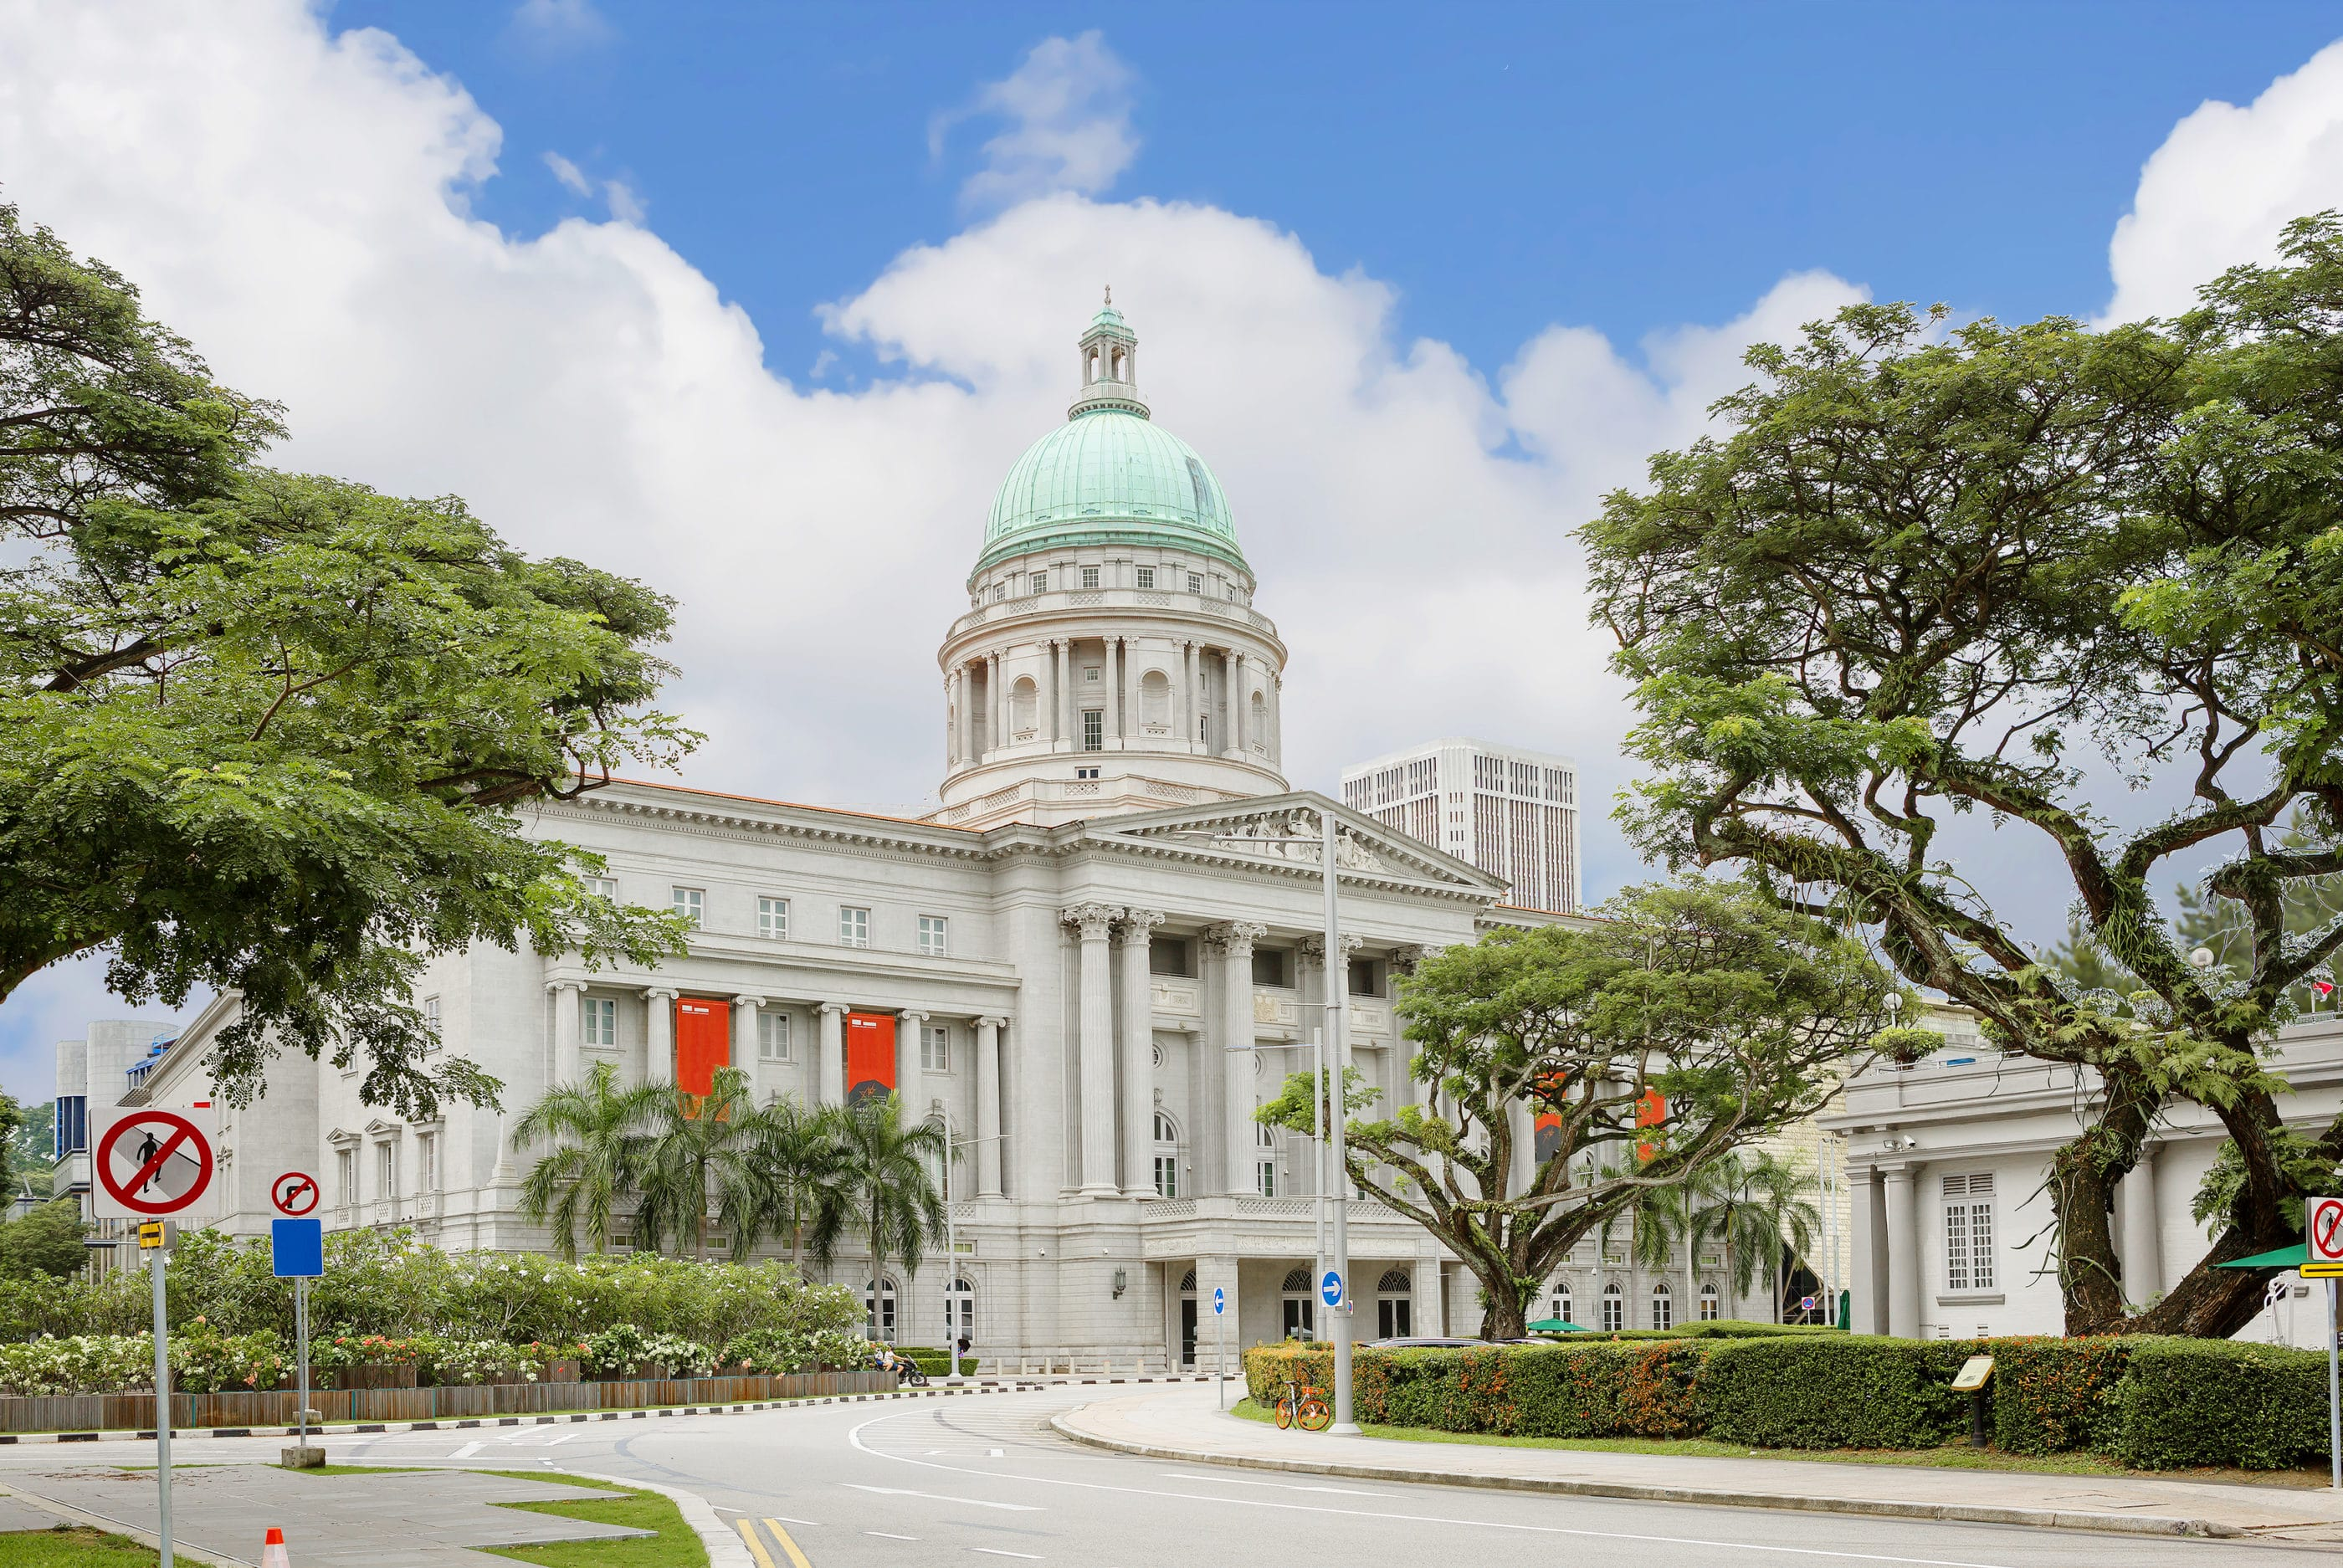 Things to do in Singapore: National Gallery